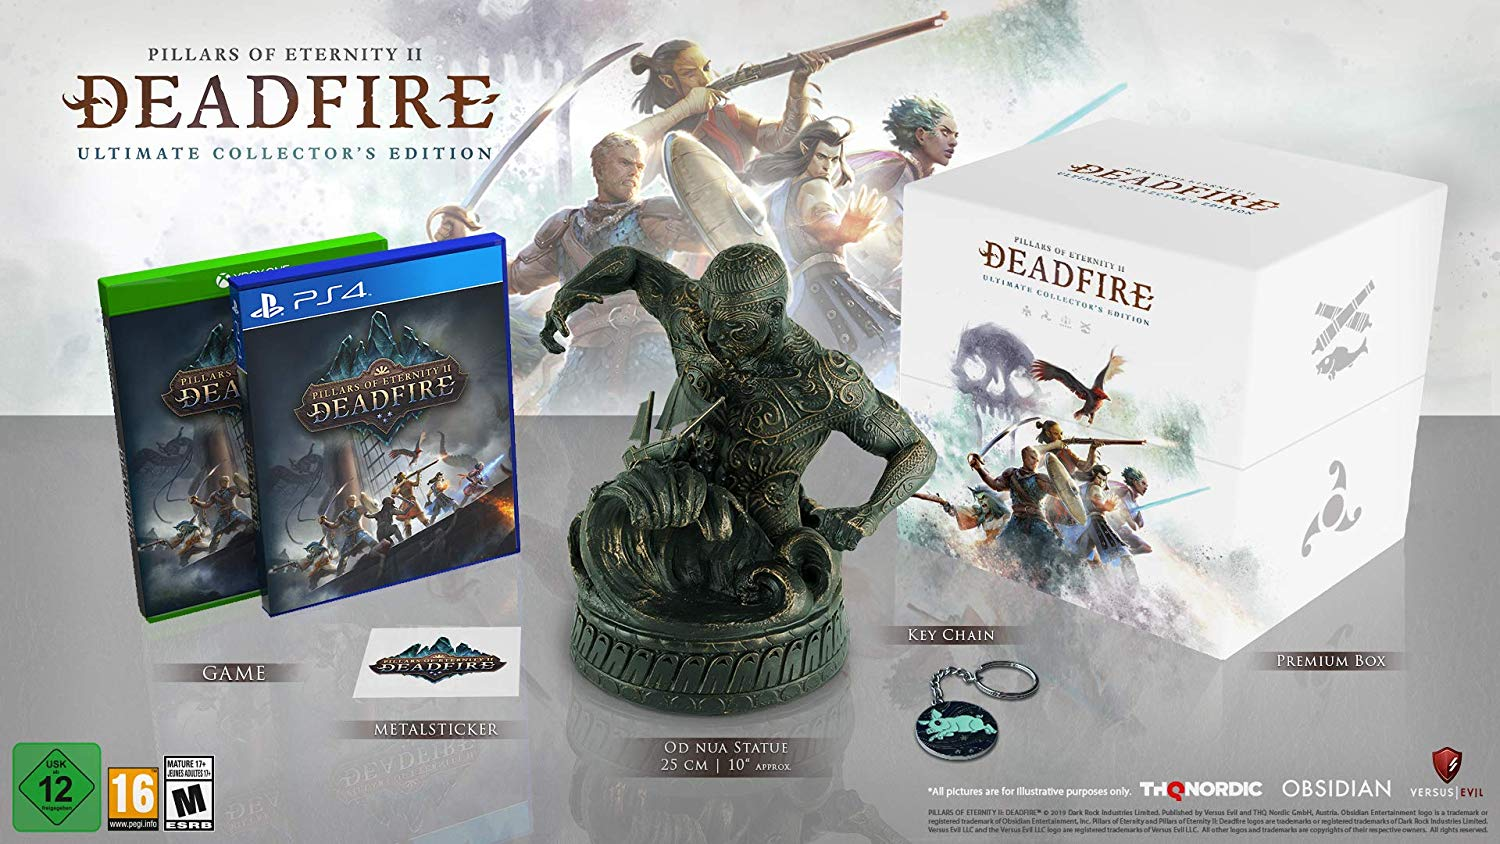 big_pillars-of-eternity-ii-deadfire-ultimate-collector-s-edition_8452981